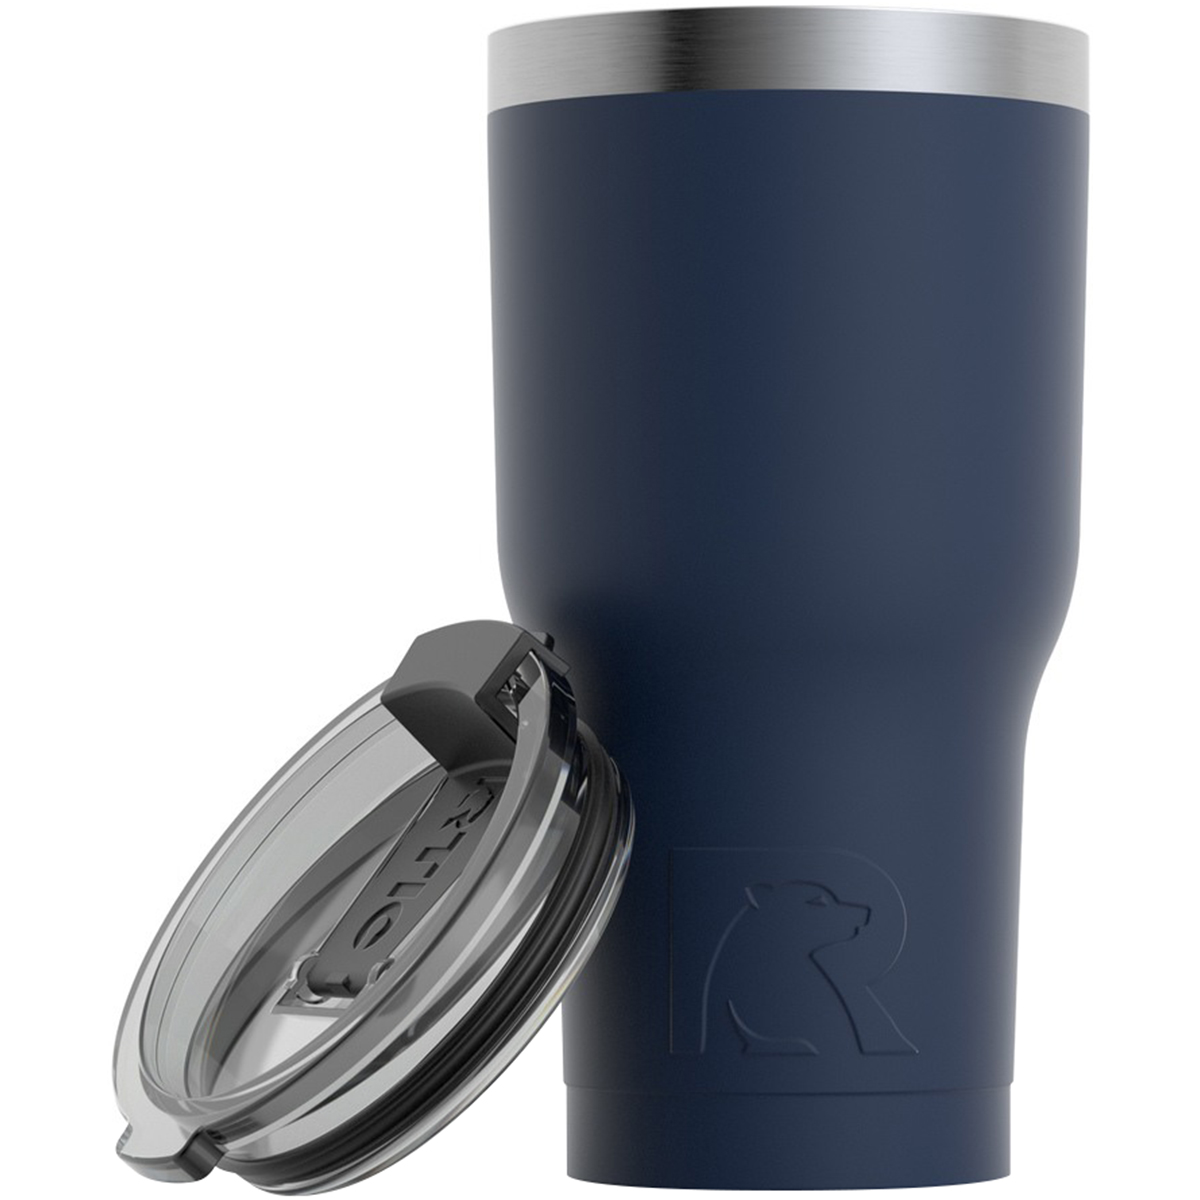 RTIC 30 oz Vacuum Insulated Stainless Steel Tumbler with Splash Proof Lid